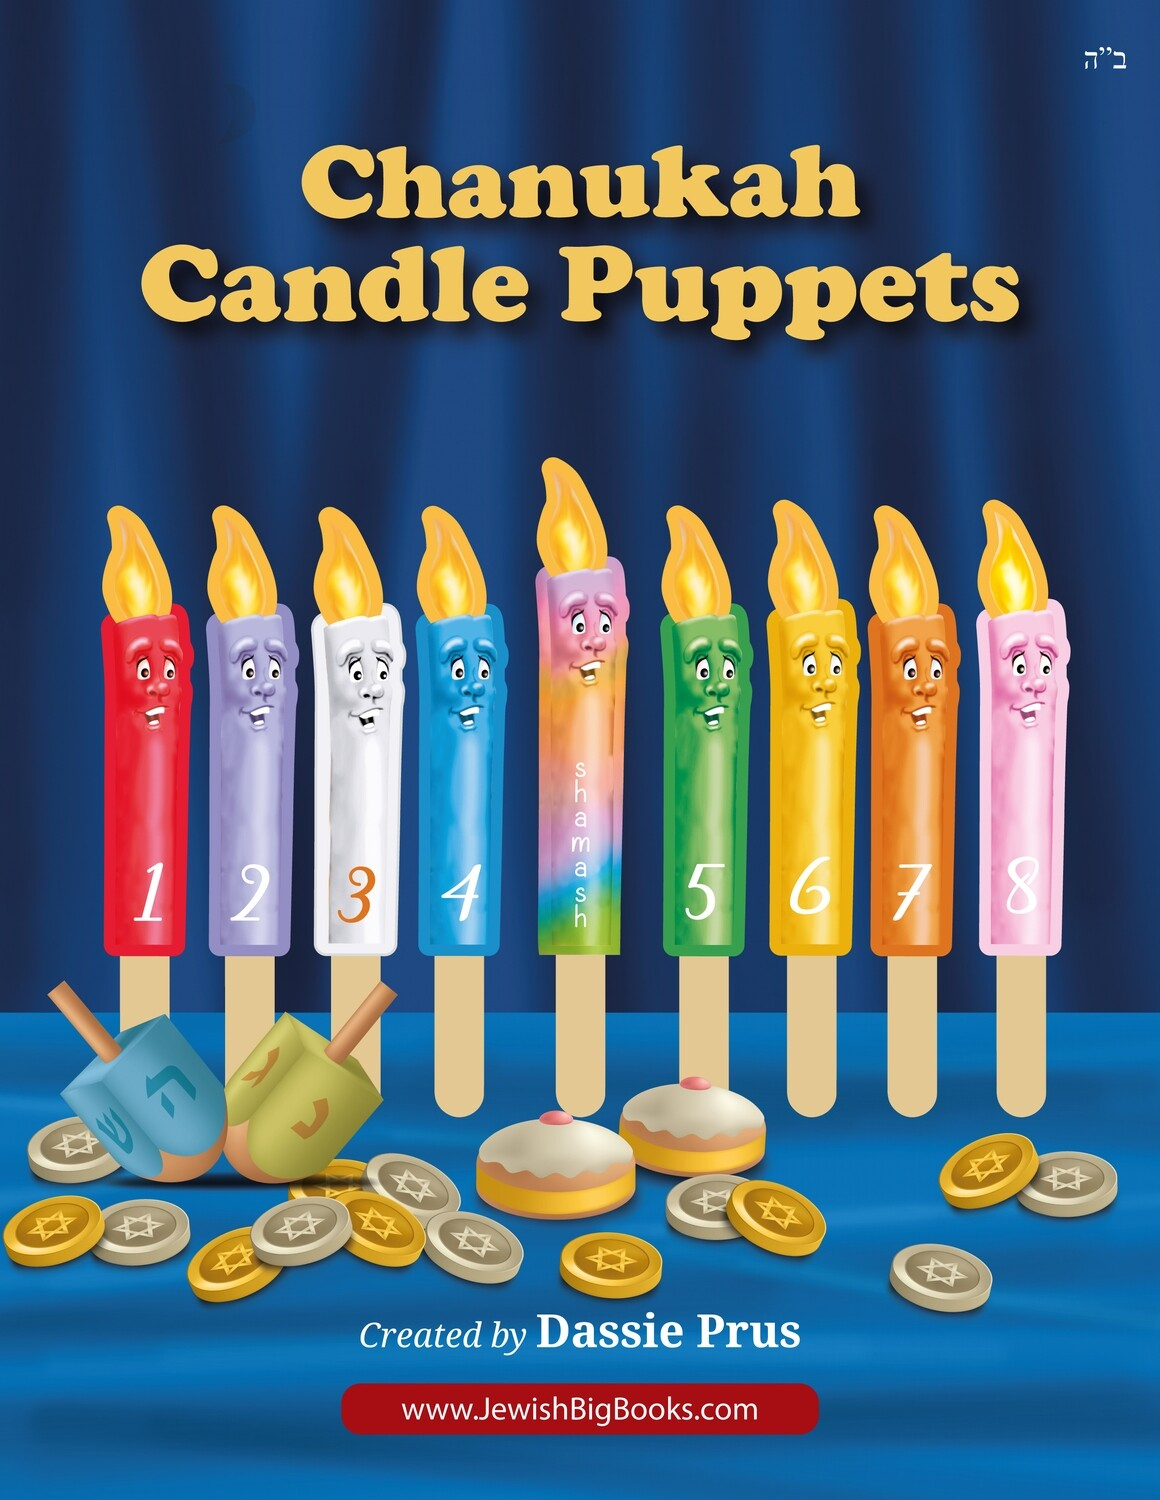 Chanukah Candle Puppets